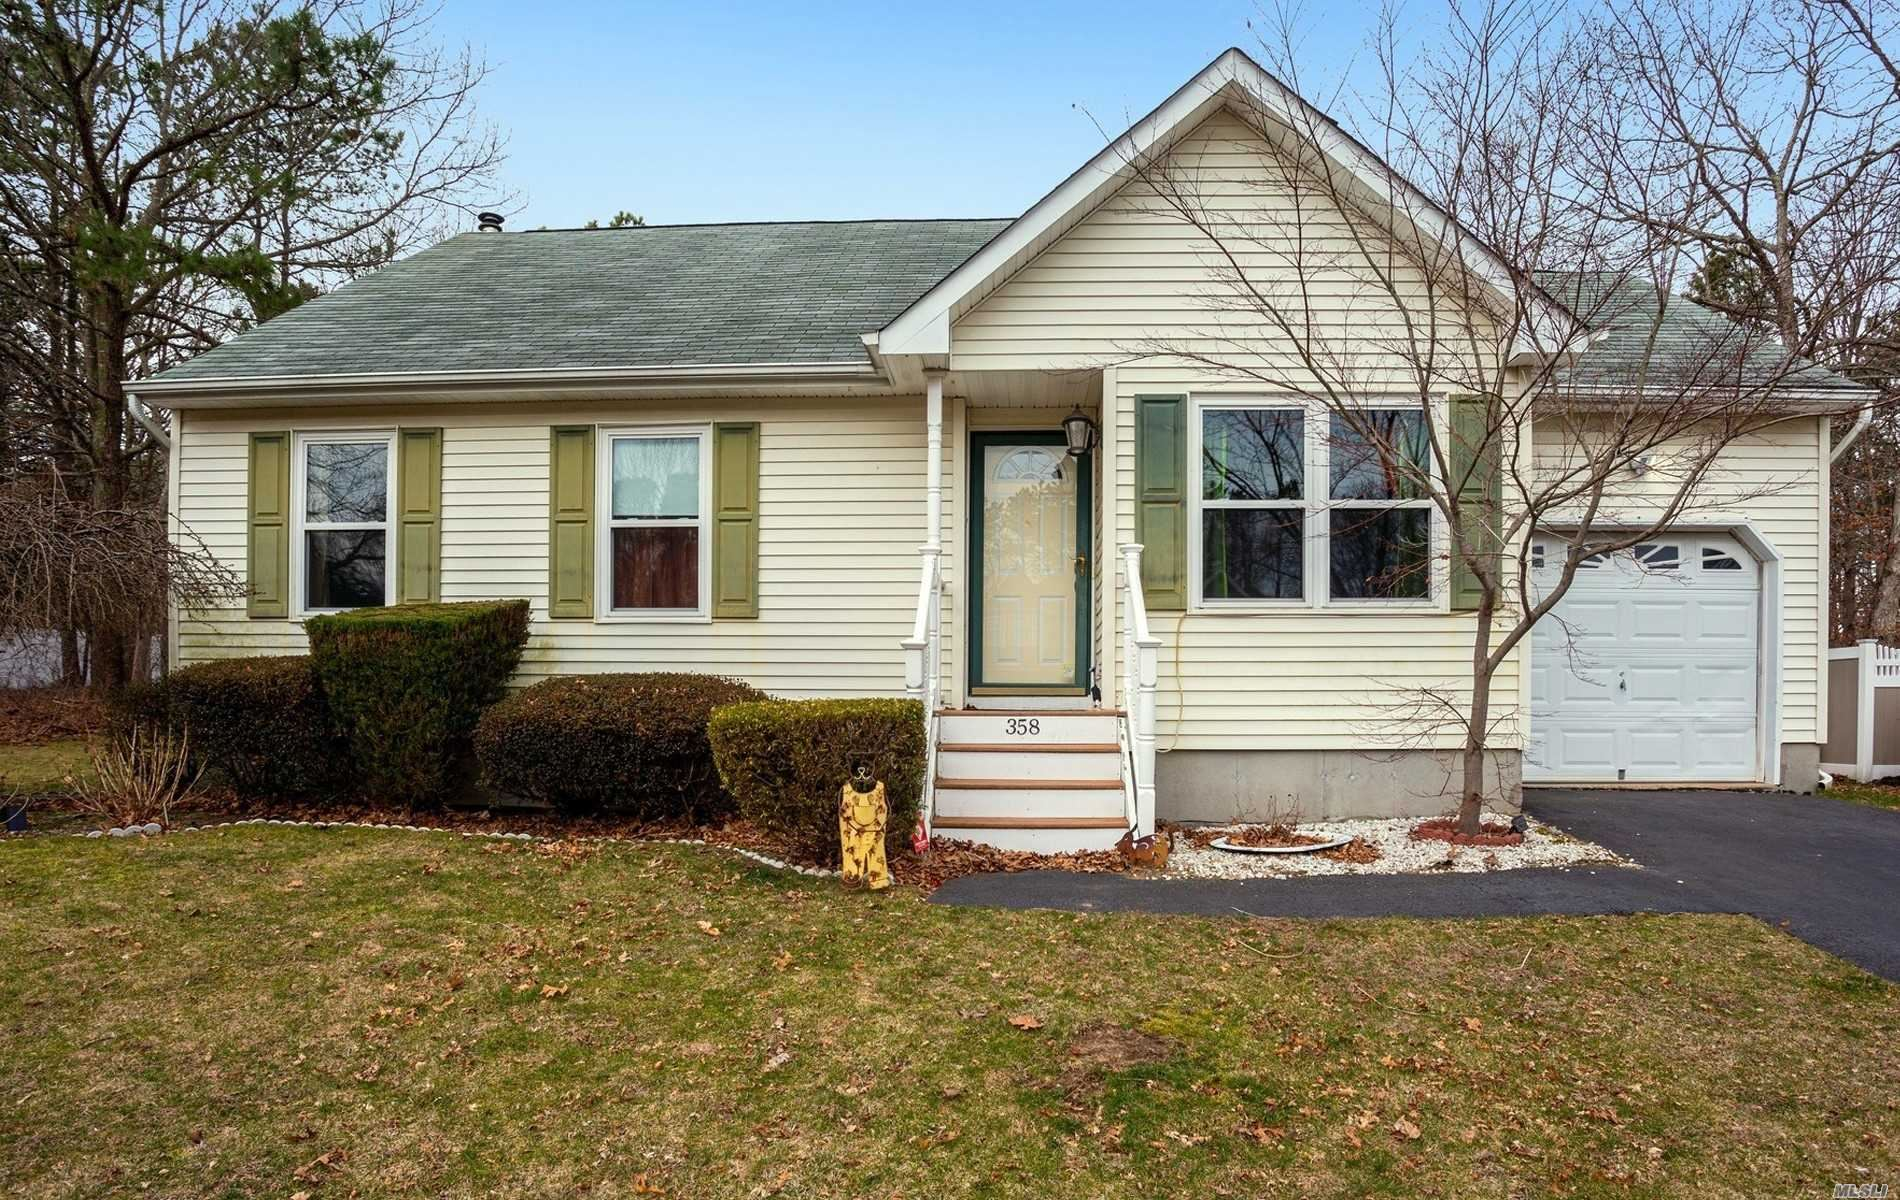 358 Tyler Avenue, Miller Place, NY 11764 - MLS#: 3208780